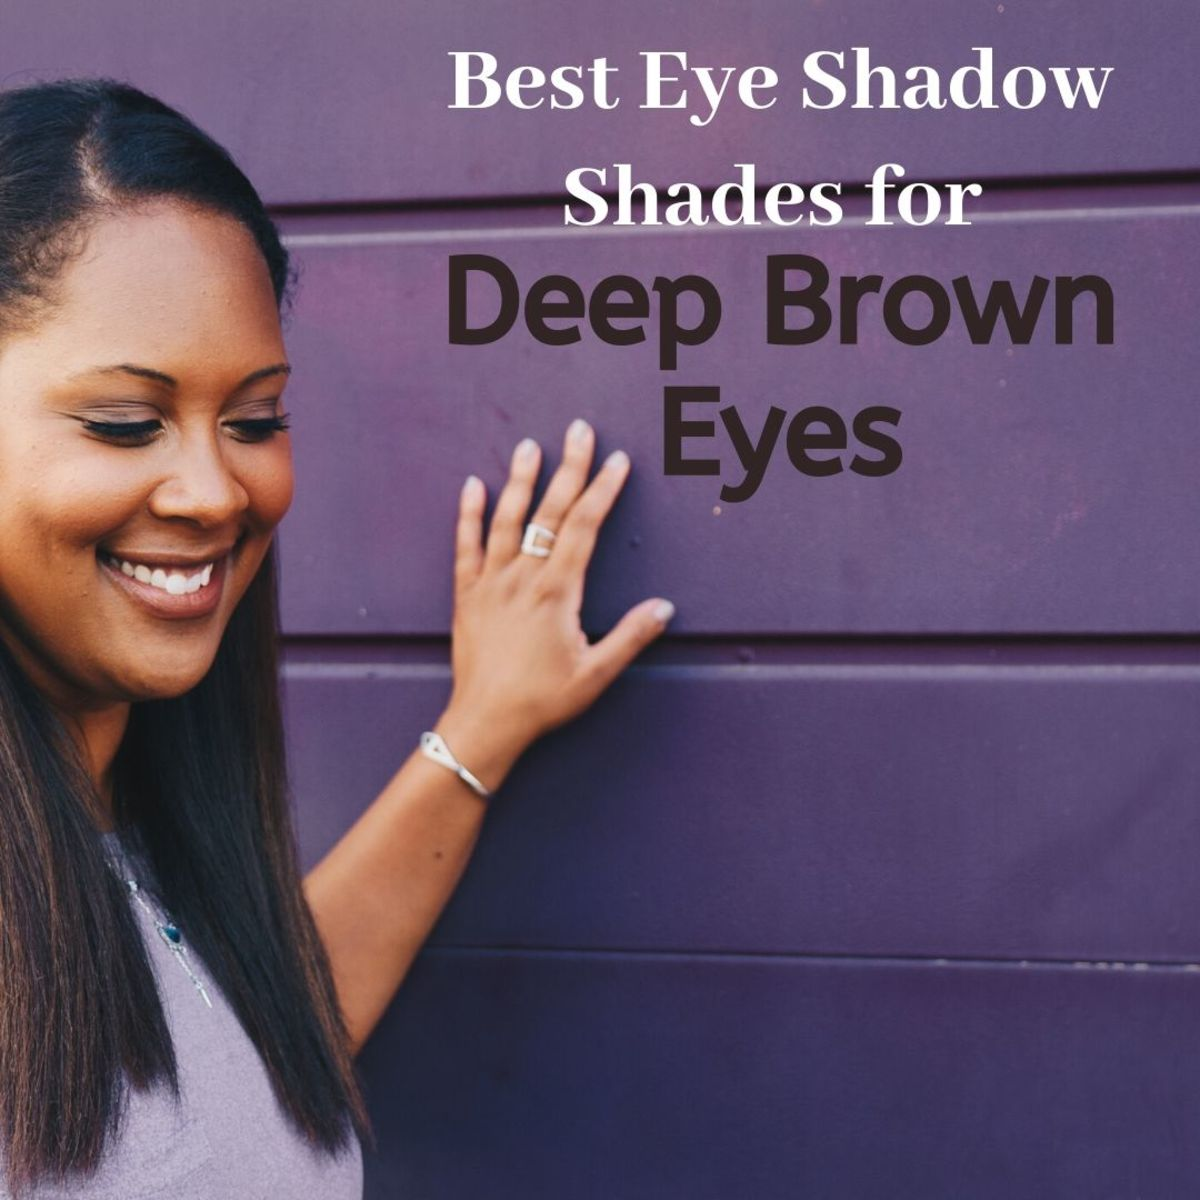 What are the best eye shadow shades for deep brown eyes? Read on to find out!